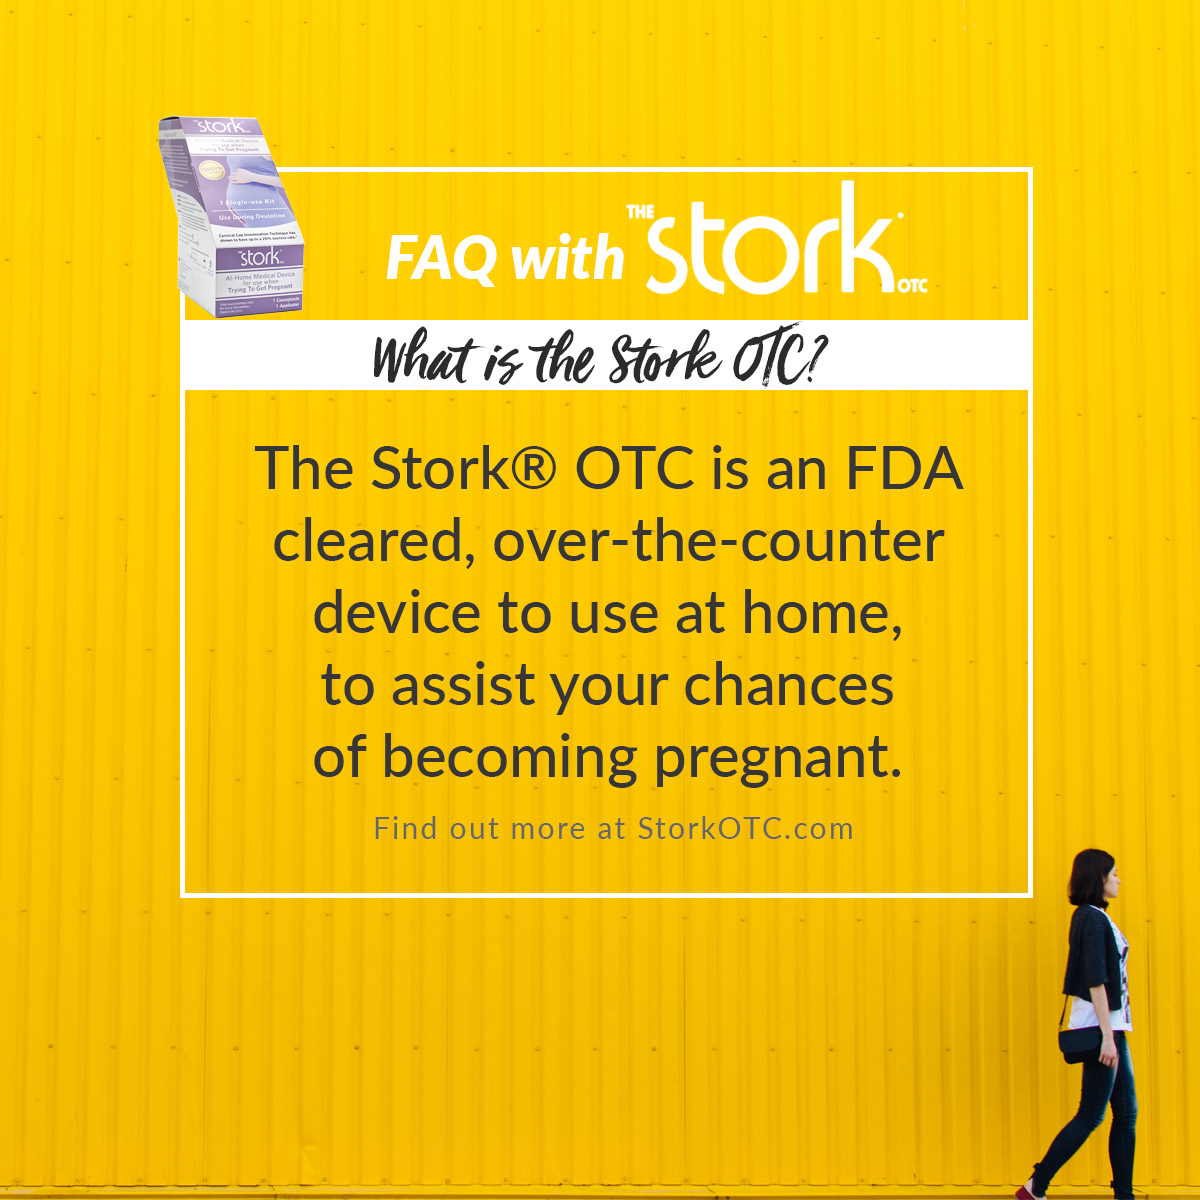 What is the Stork OTC